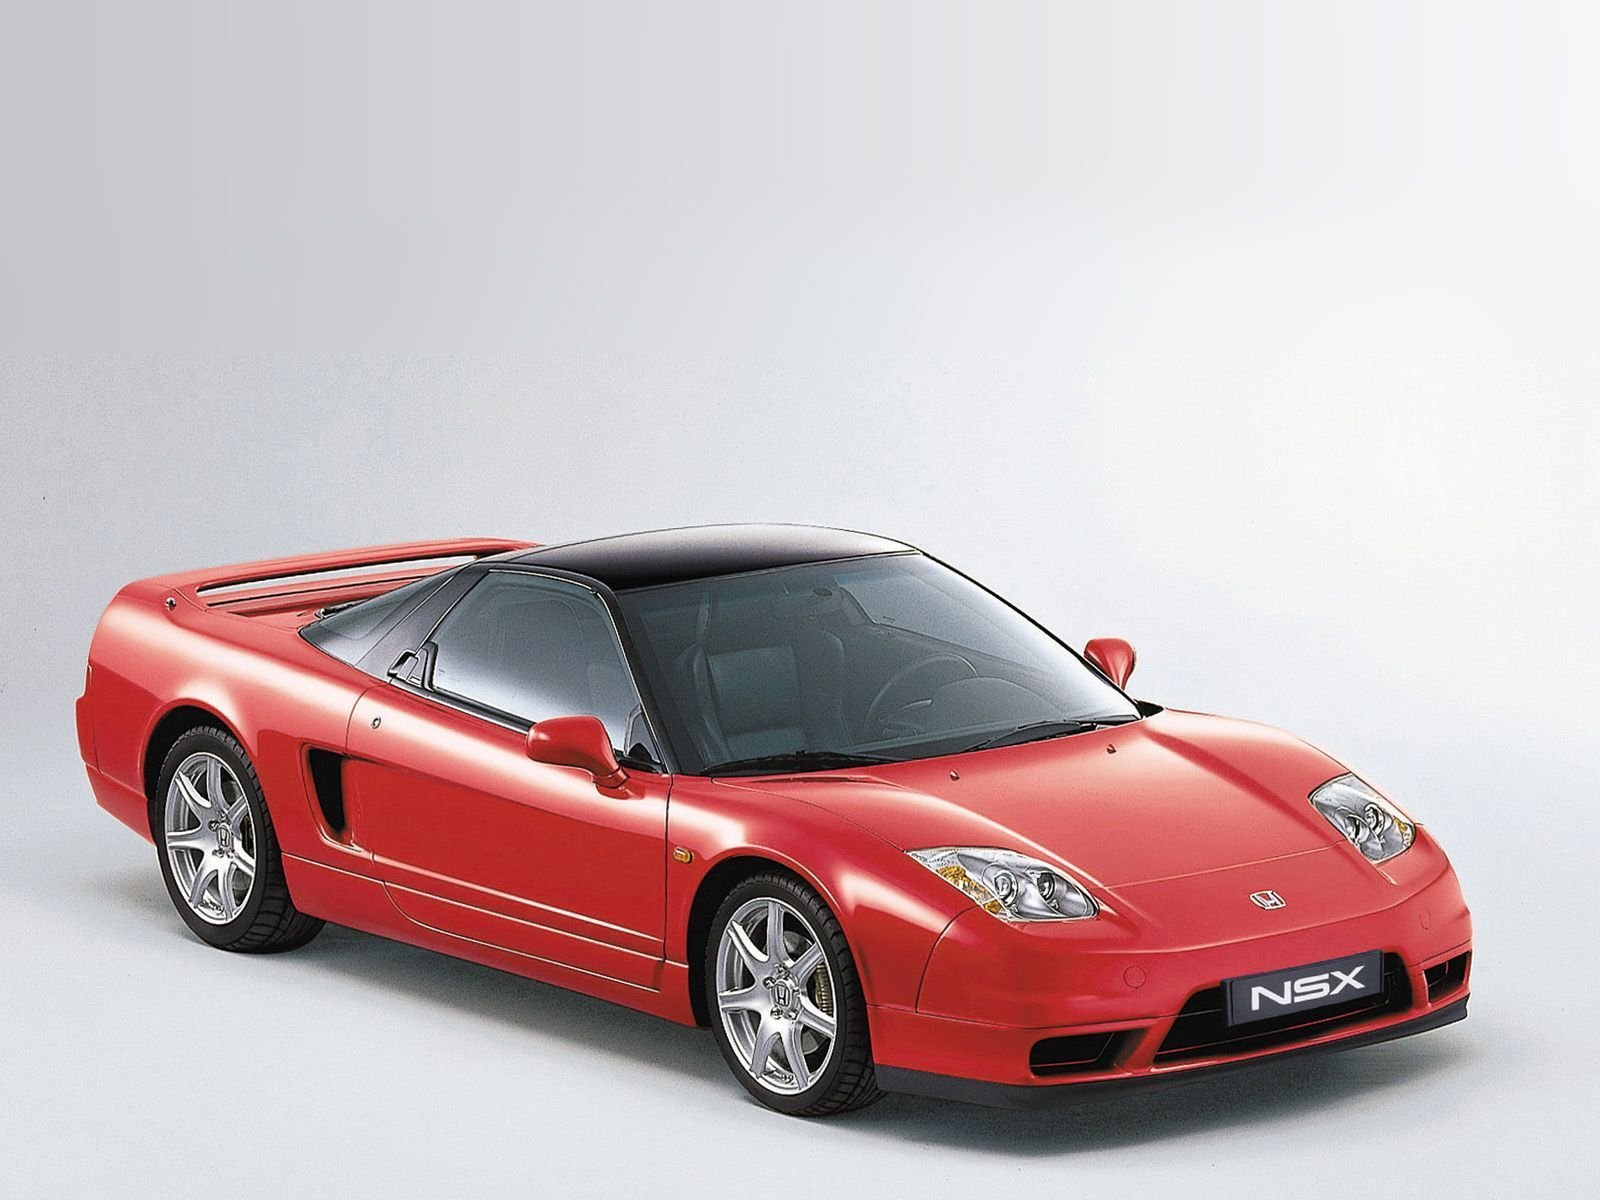 1990 2005 honda nsx picture 33135 car review top speed. Black Bedroom Furniture Sets. Home Design Ideas